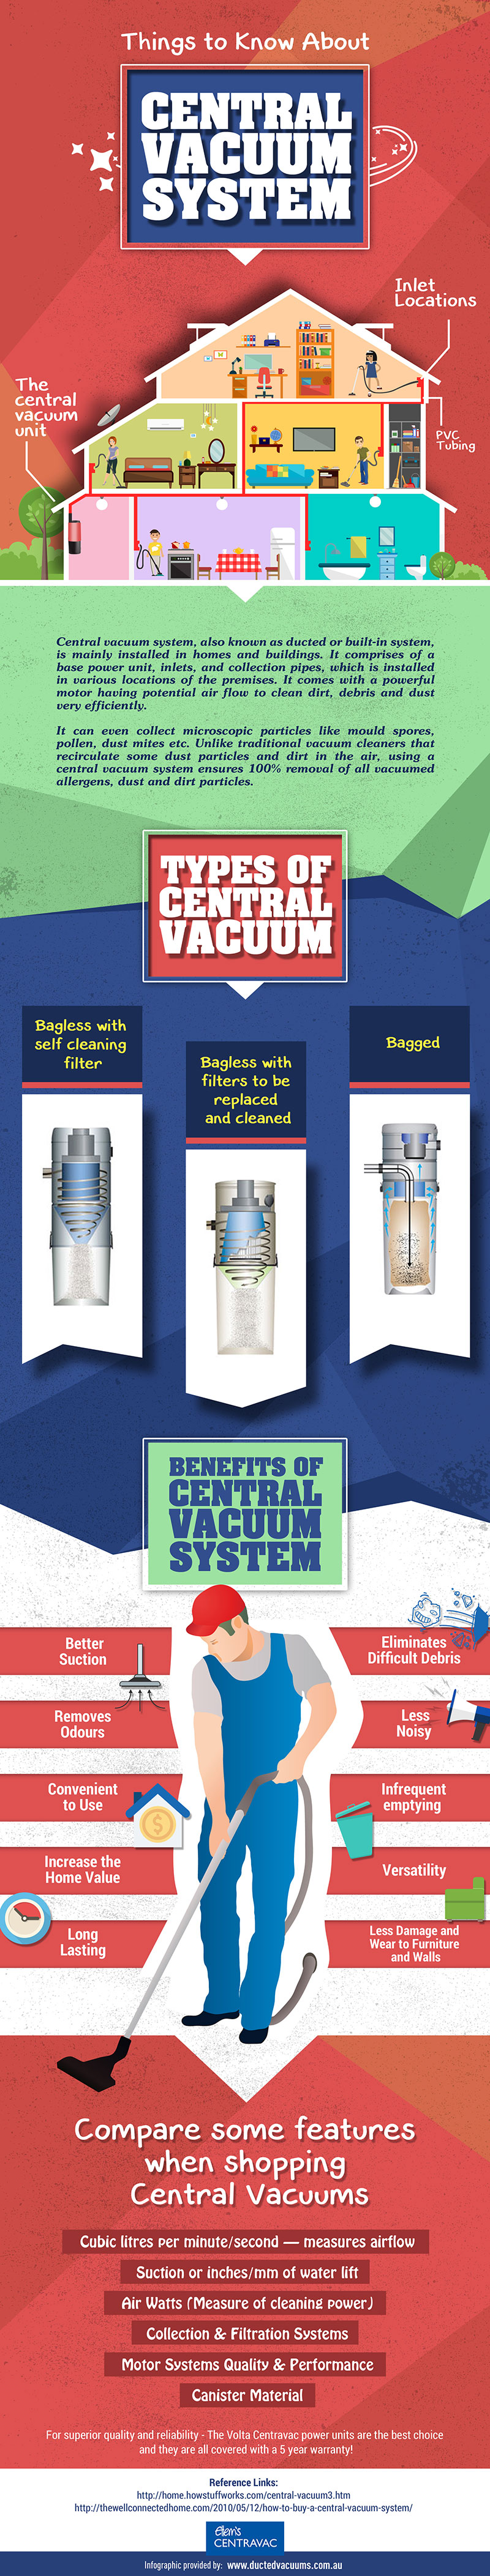 things-to-know-about-central-vacuum-system-infographic-plaza